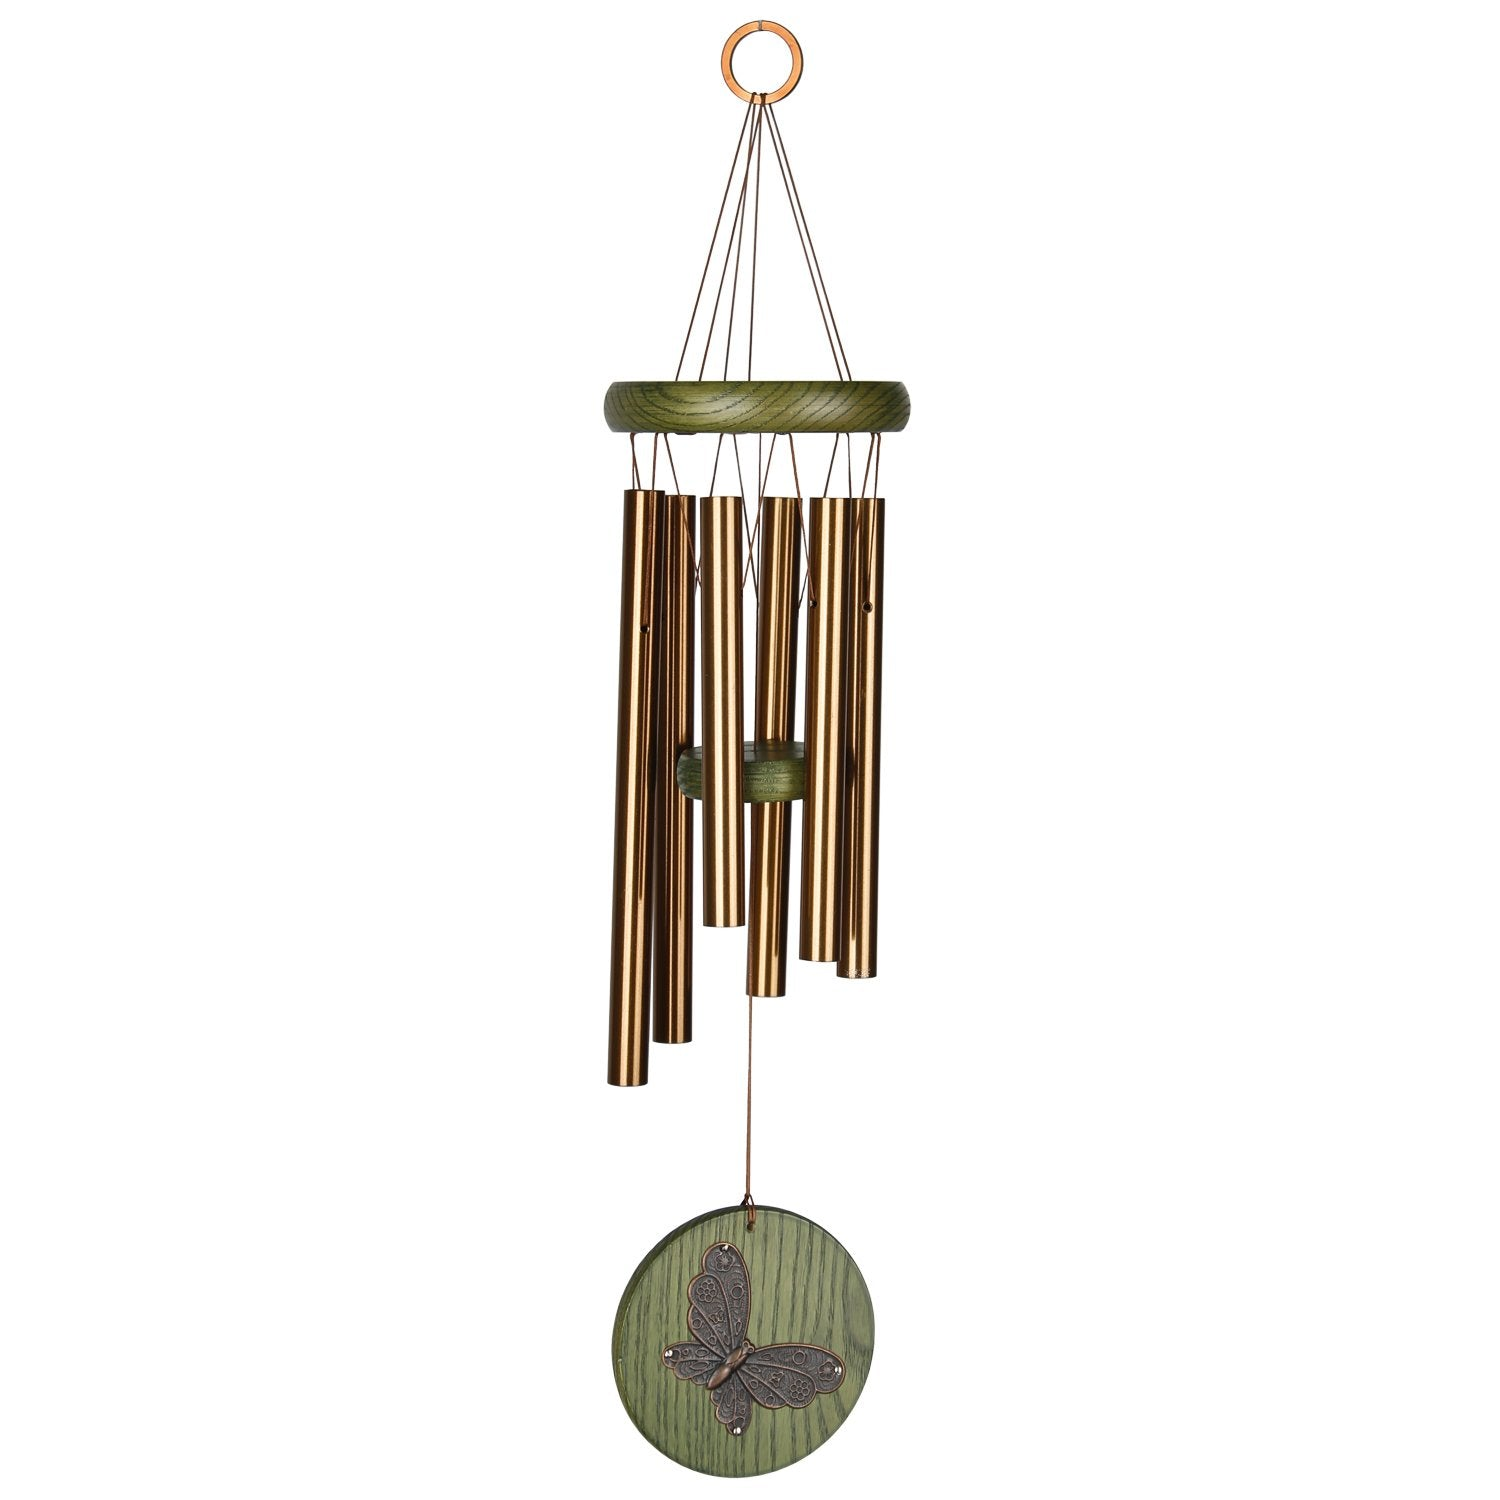 Habitats Chime - Green, Butterfly full product image